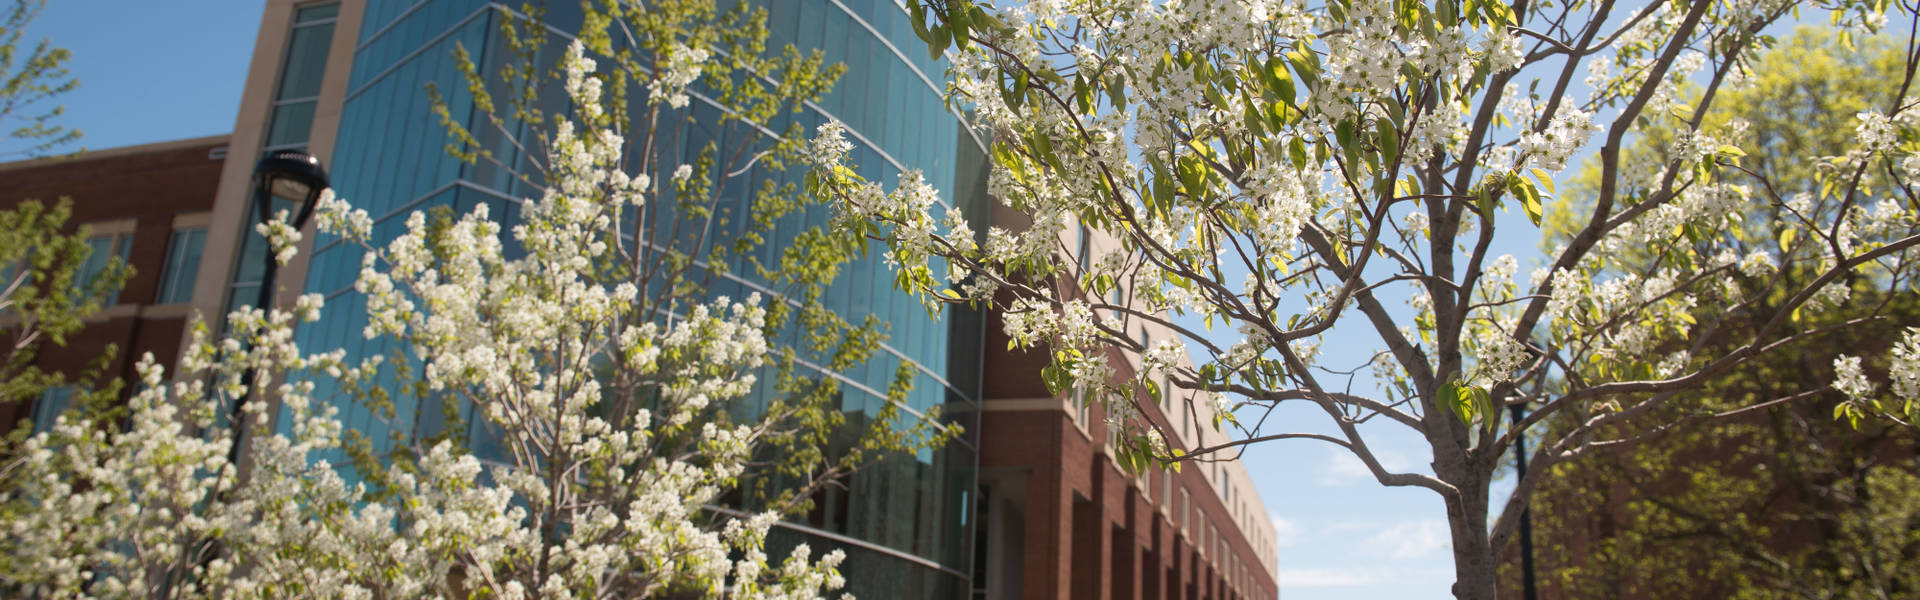 Lower campus beauty during the spring.